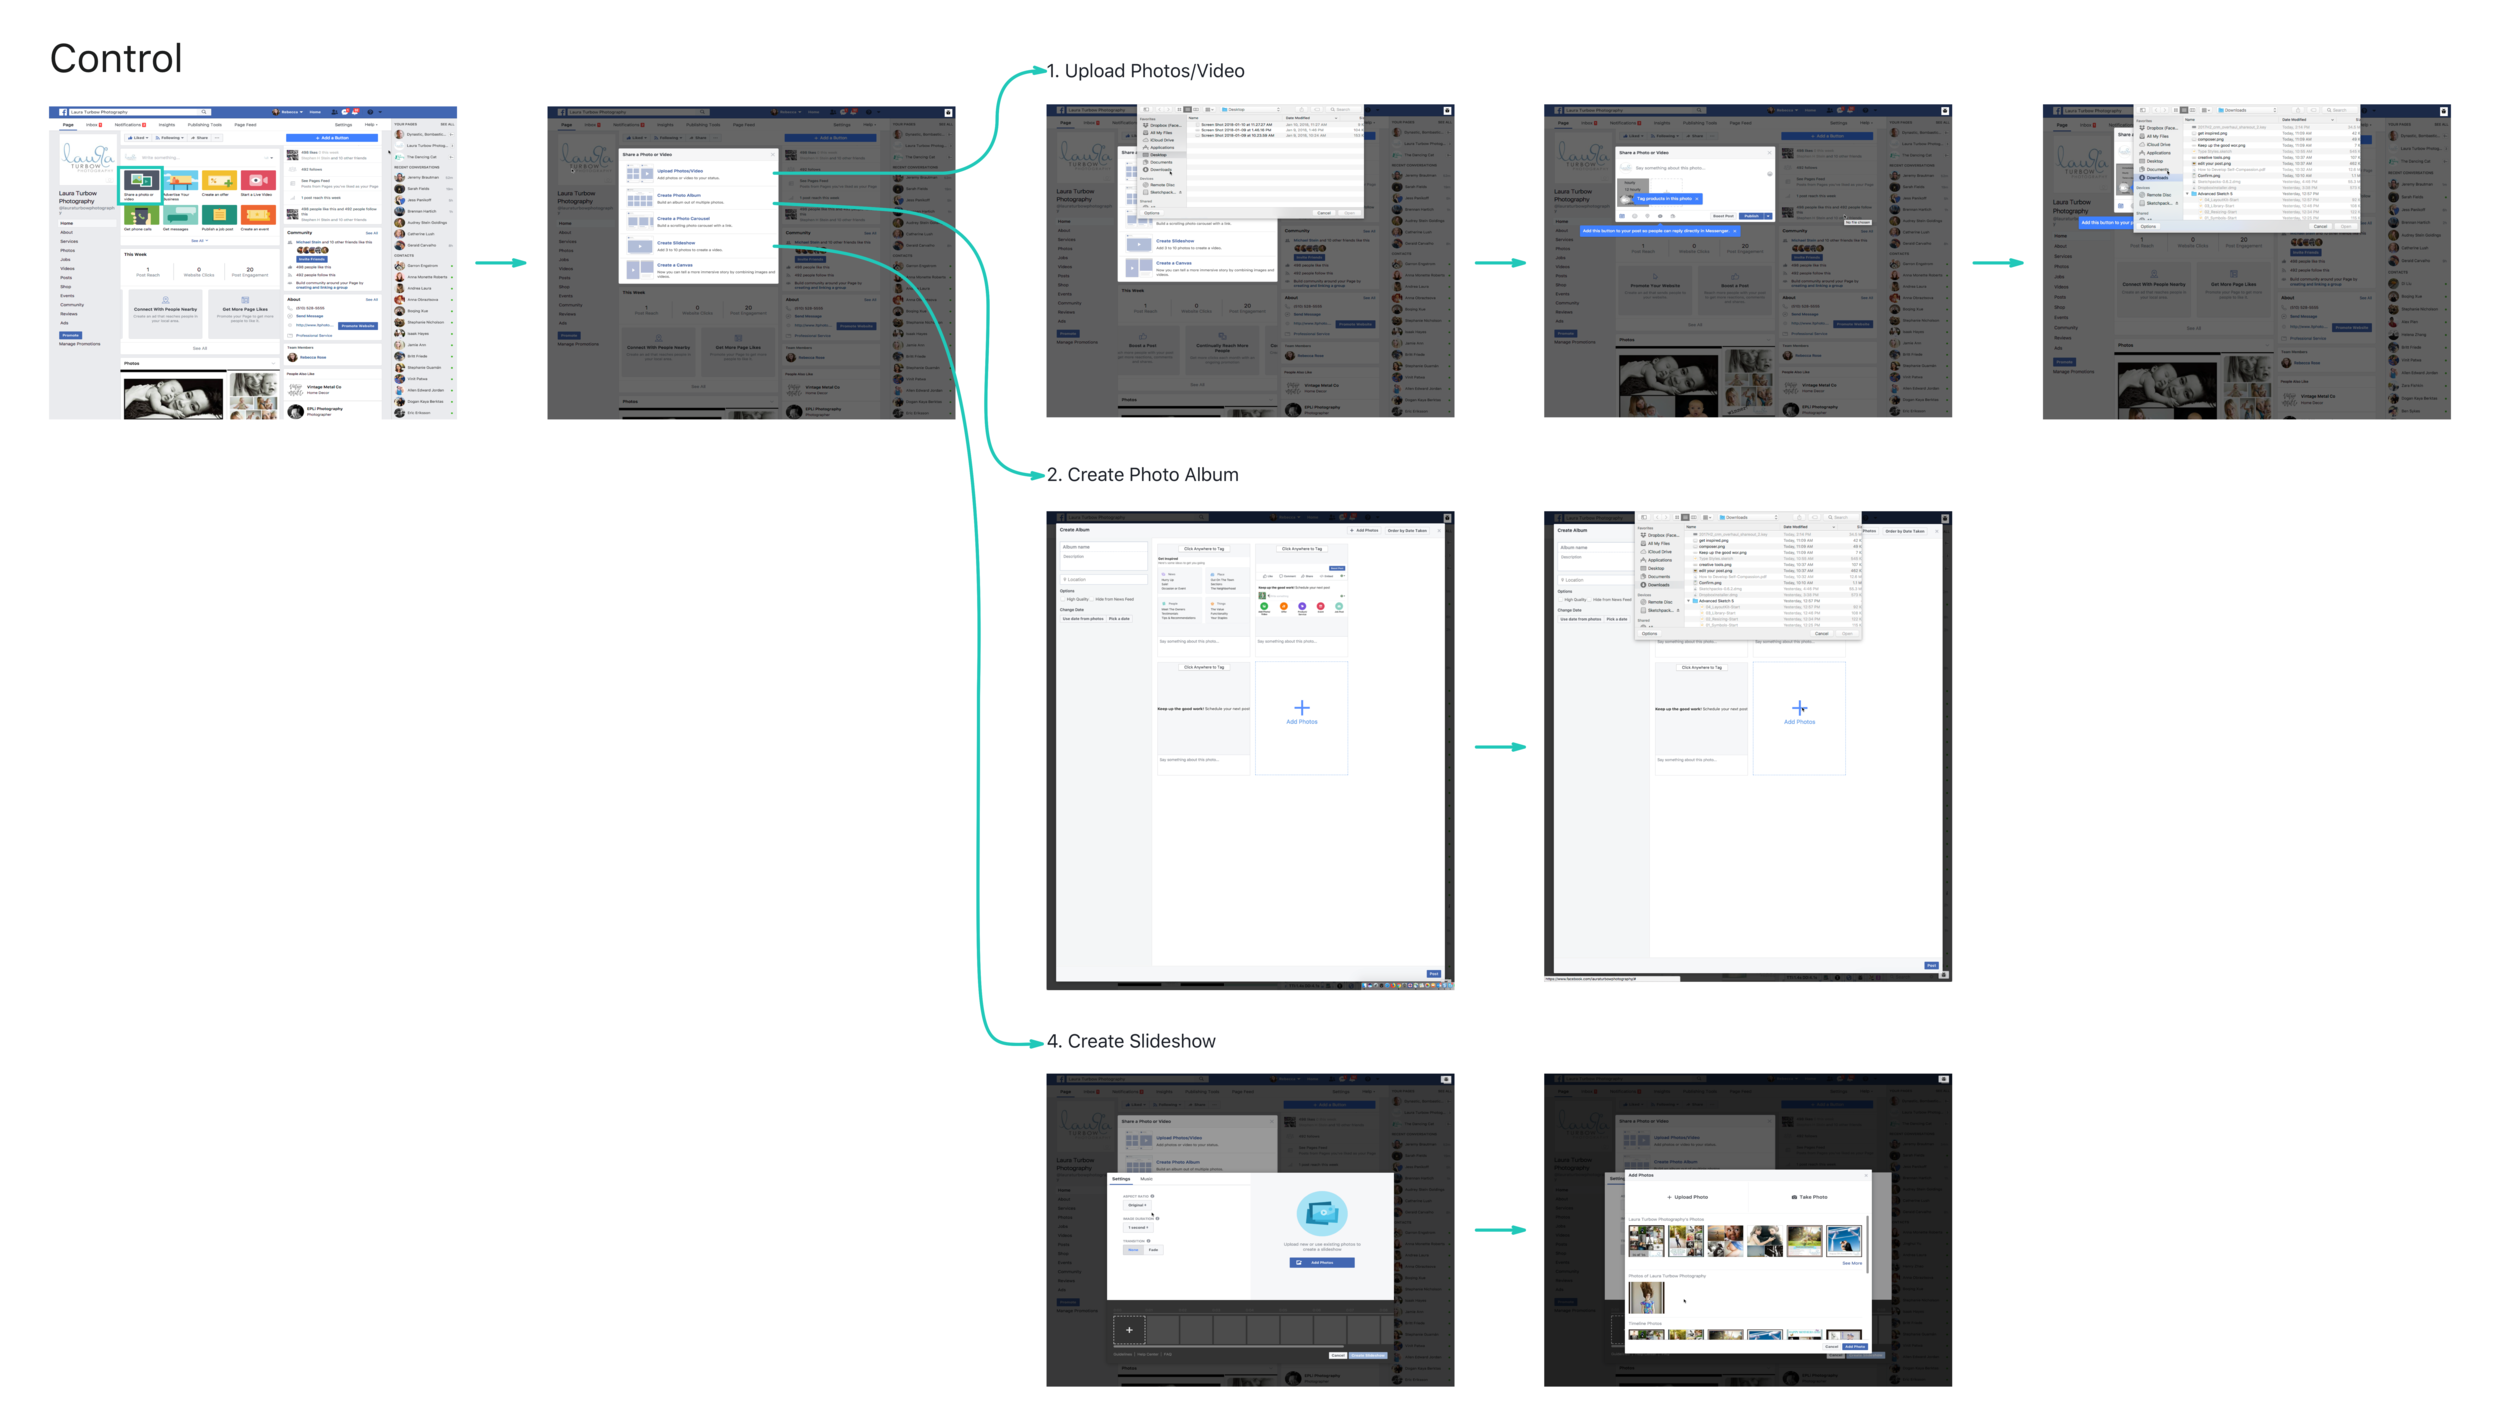 Flow of control experience: Before uploading a single image or video, Page Admin must select a format.